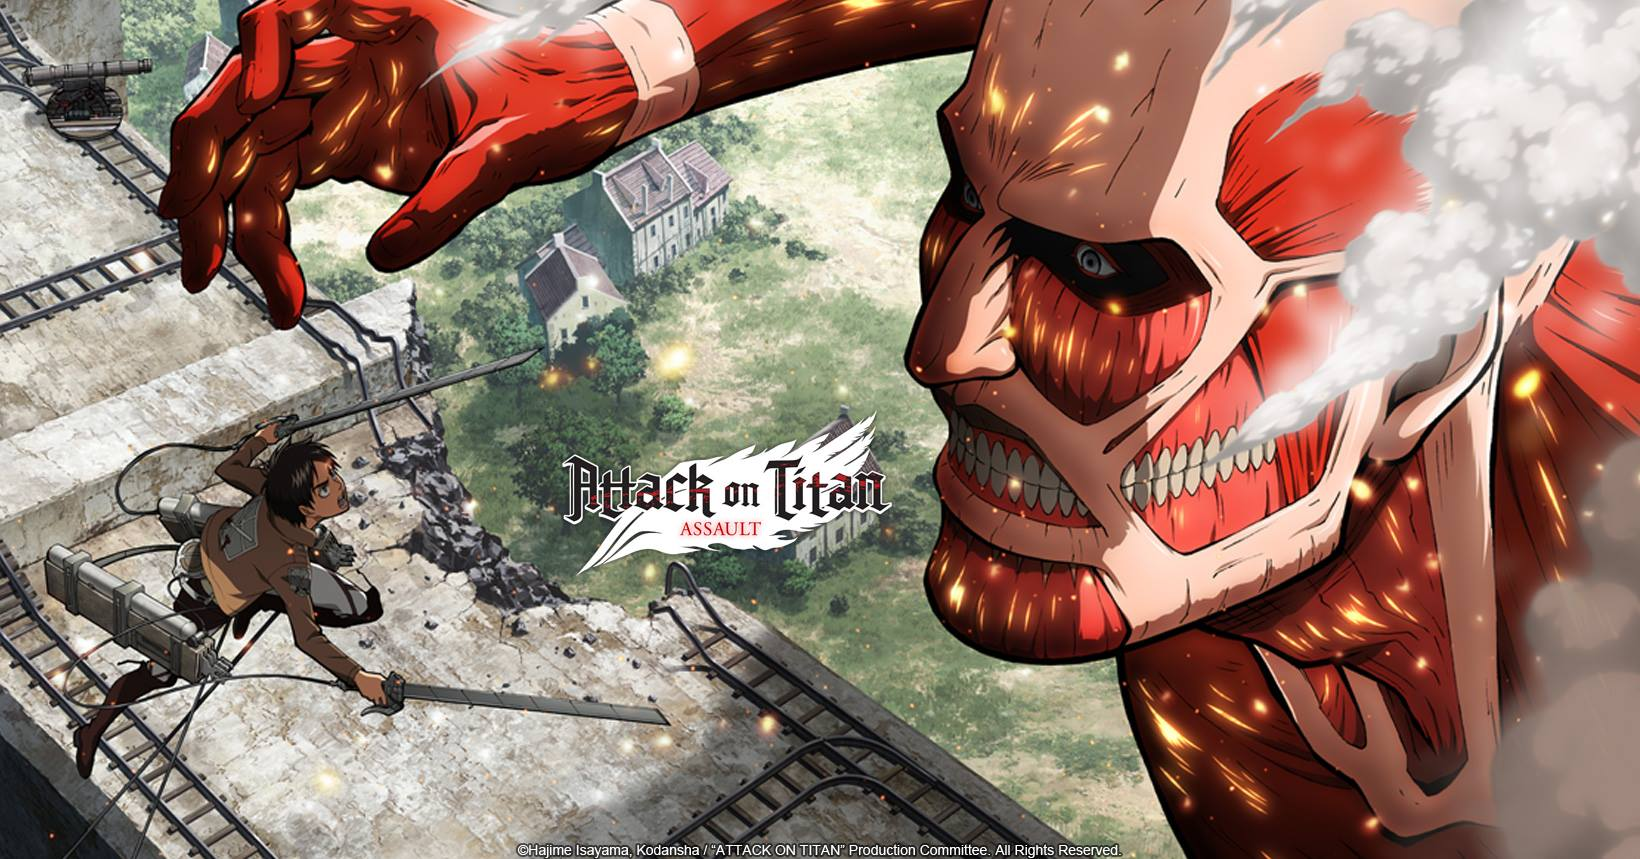 Attack on Titan Assault mod and apk download for pc, ios and android